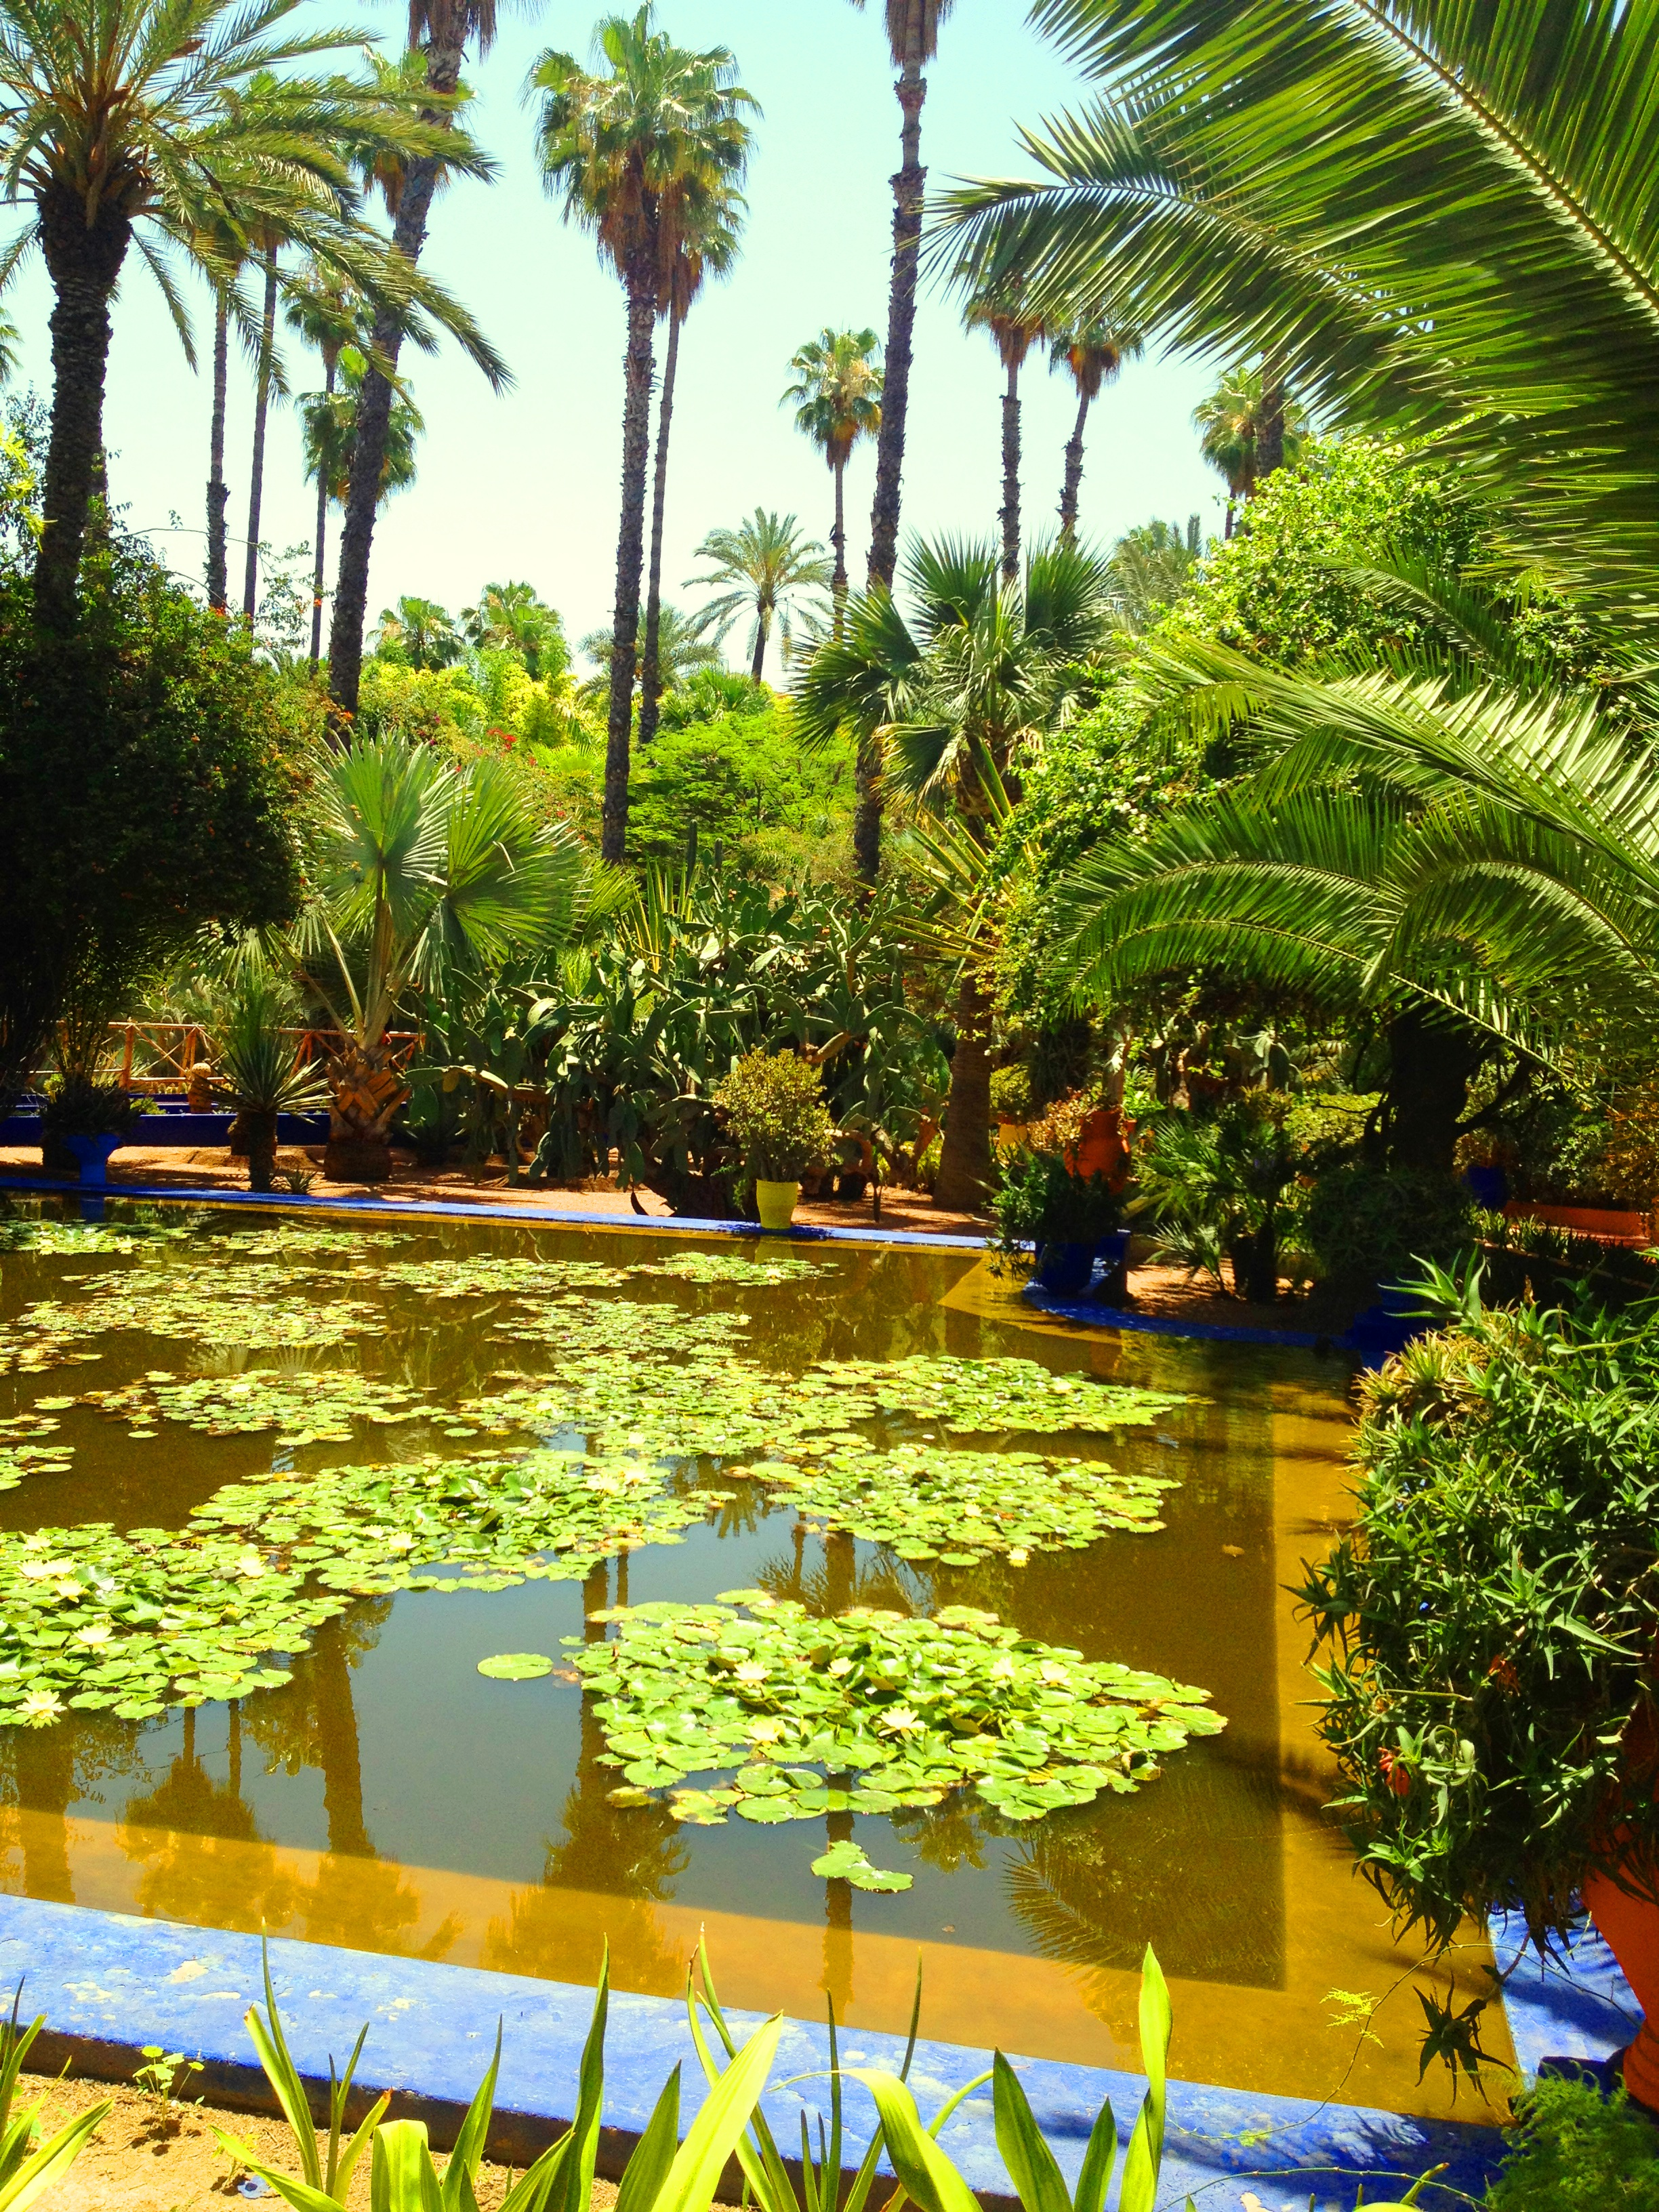 Inspired by ysl and le jardin majorelle ayesha amato for Jardin marrakech